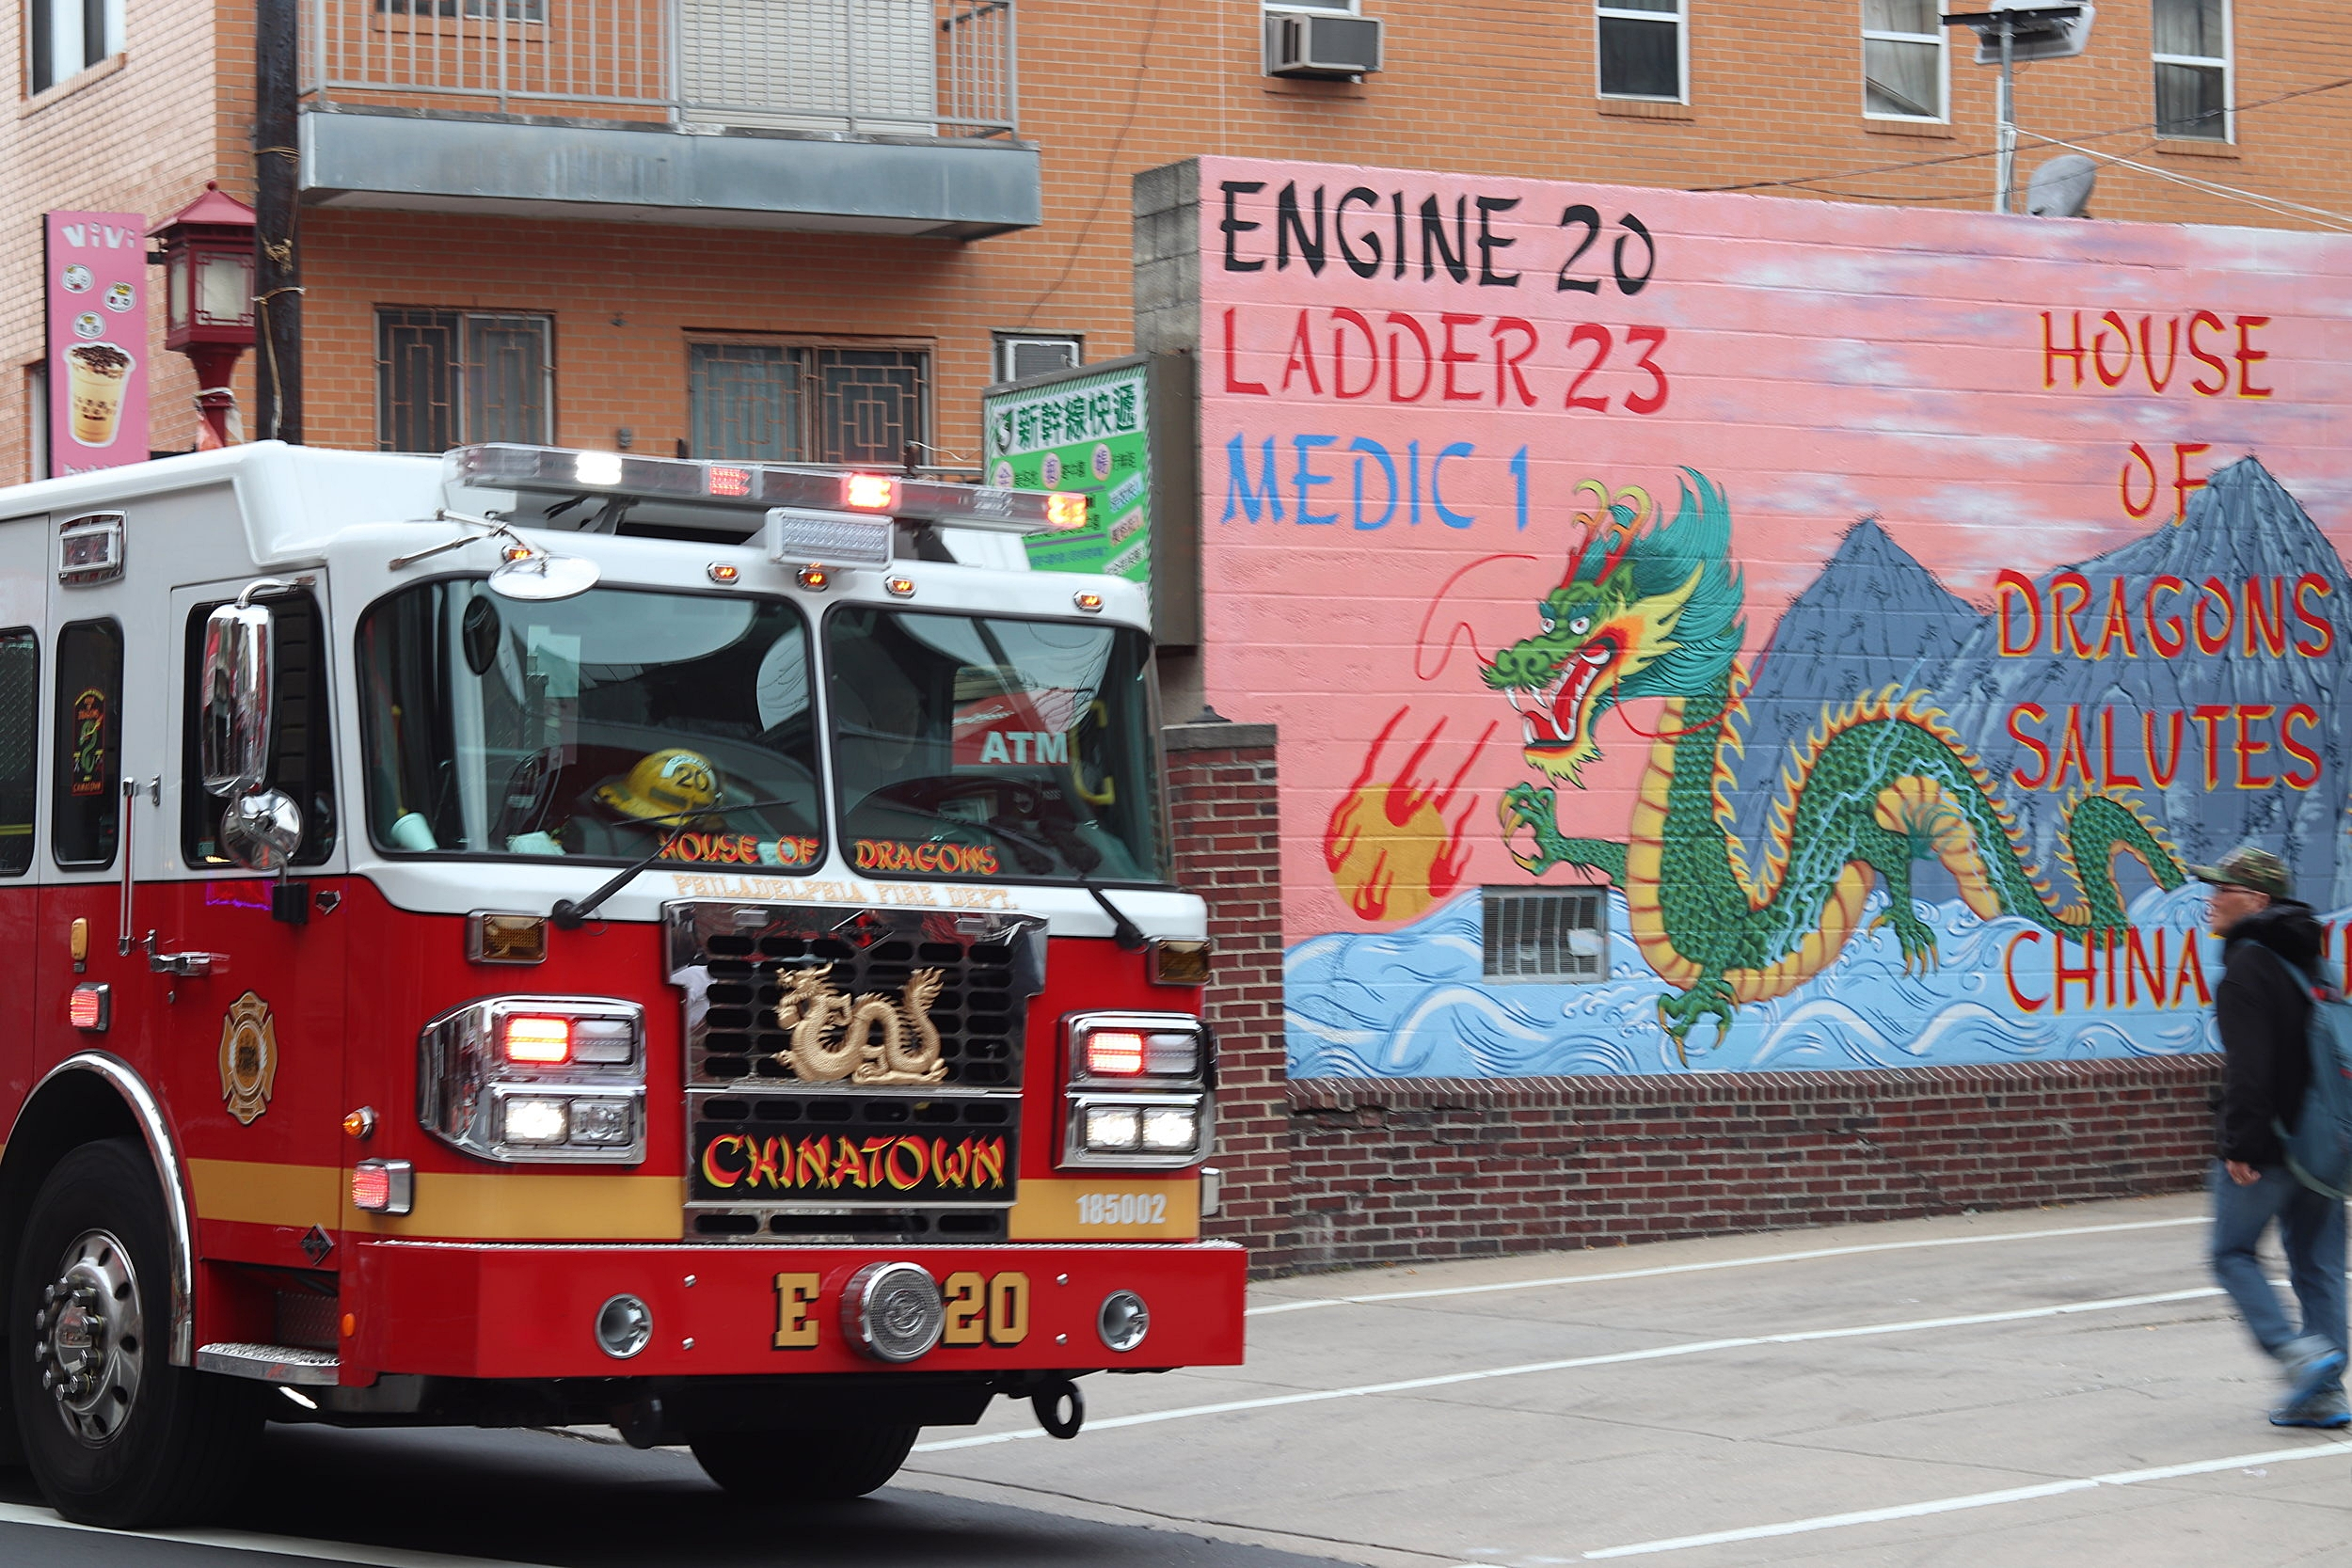 Check out the Chinatown fire truck!